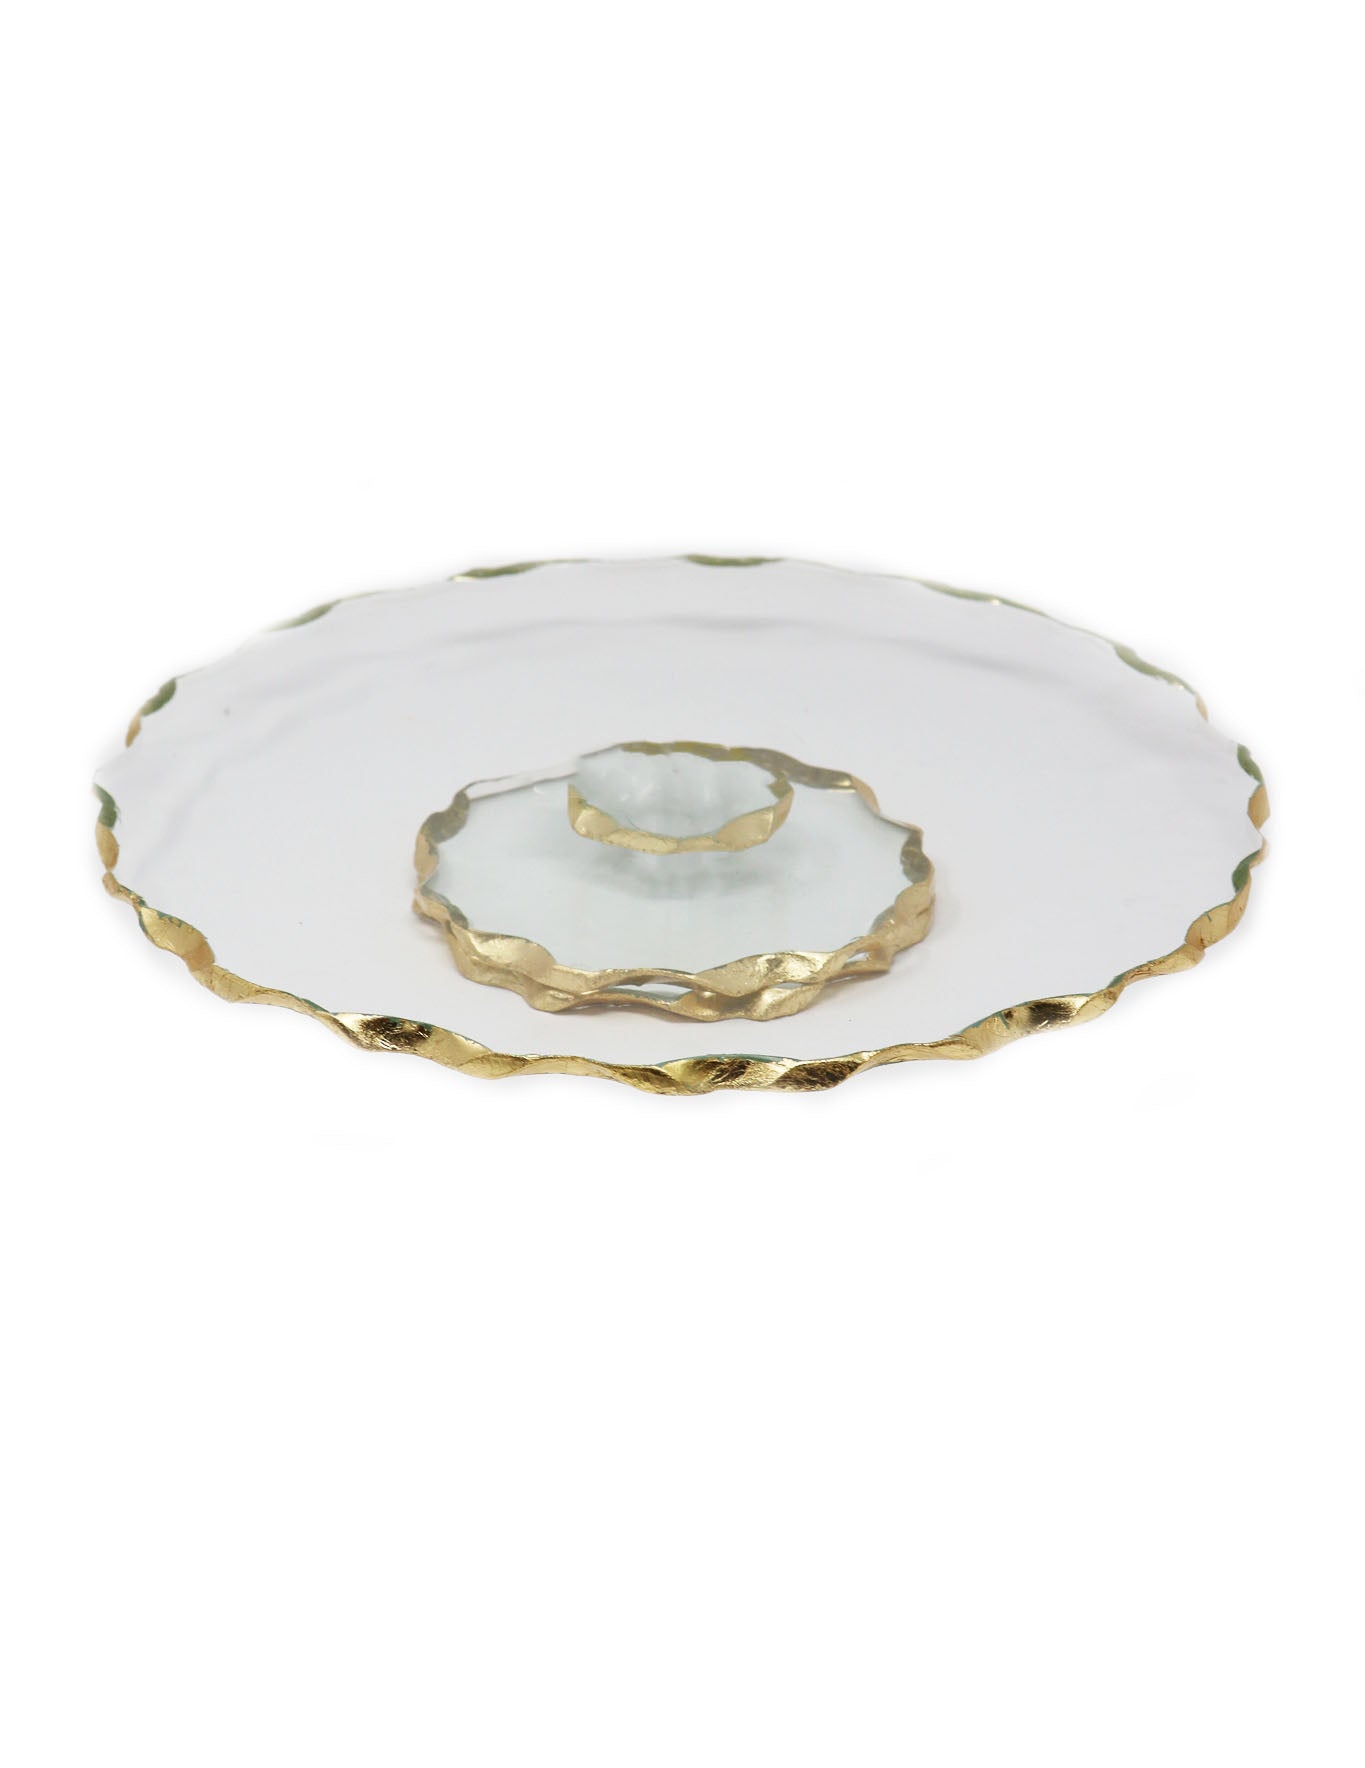 "Goldedge Handcrafted Crystal 13"" Turning Platter - Gabrielle's Biloxi"